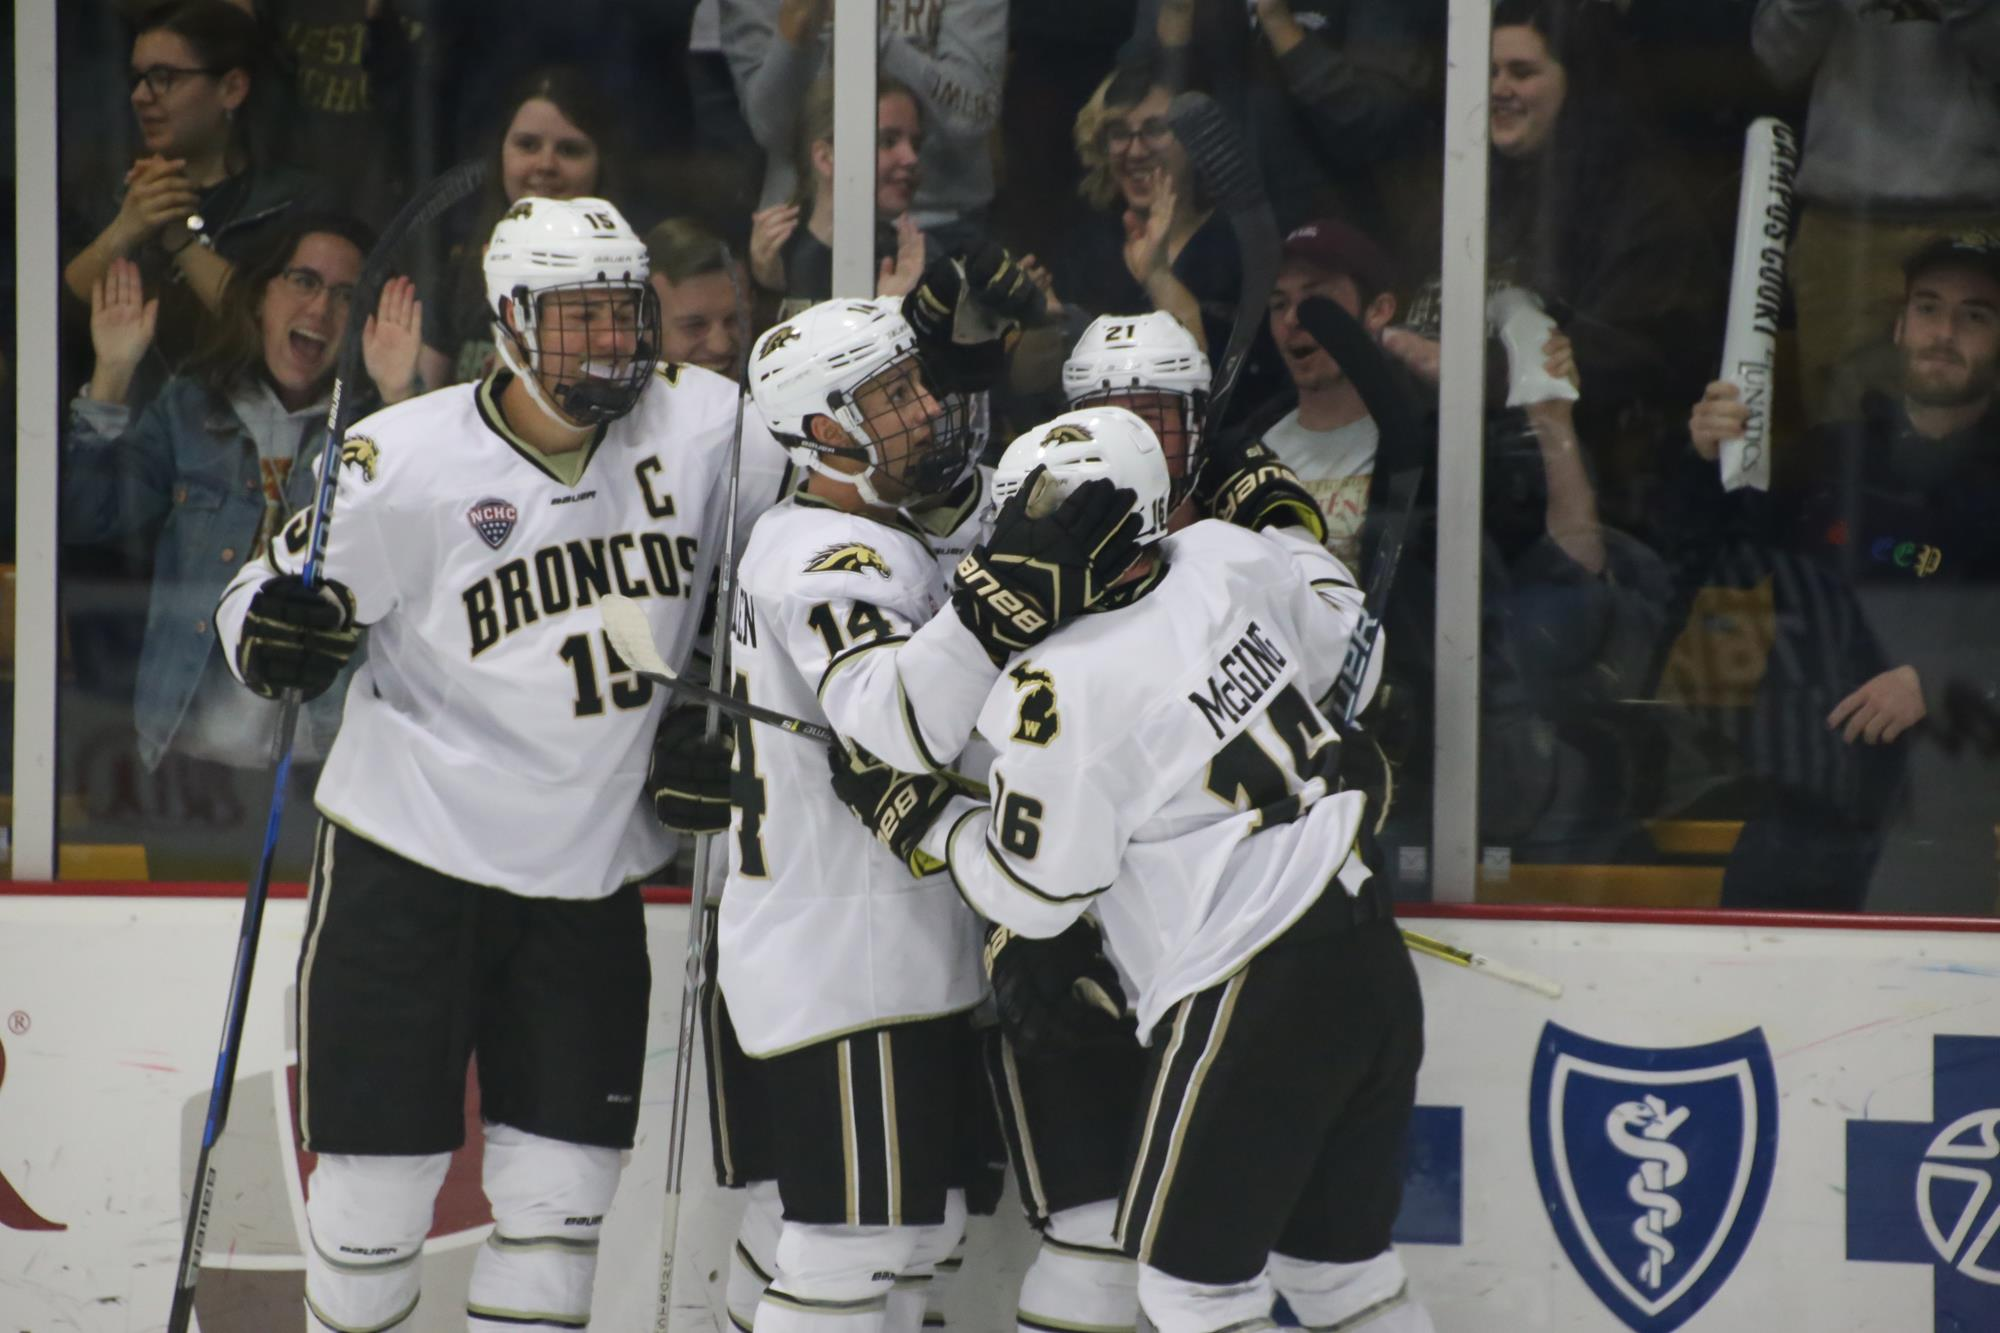 Hockey Set for Clash With No. 1 Denver - Western Michigan University ... f387ce7148d